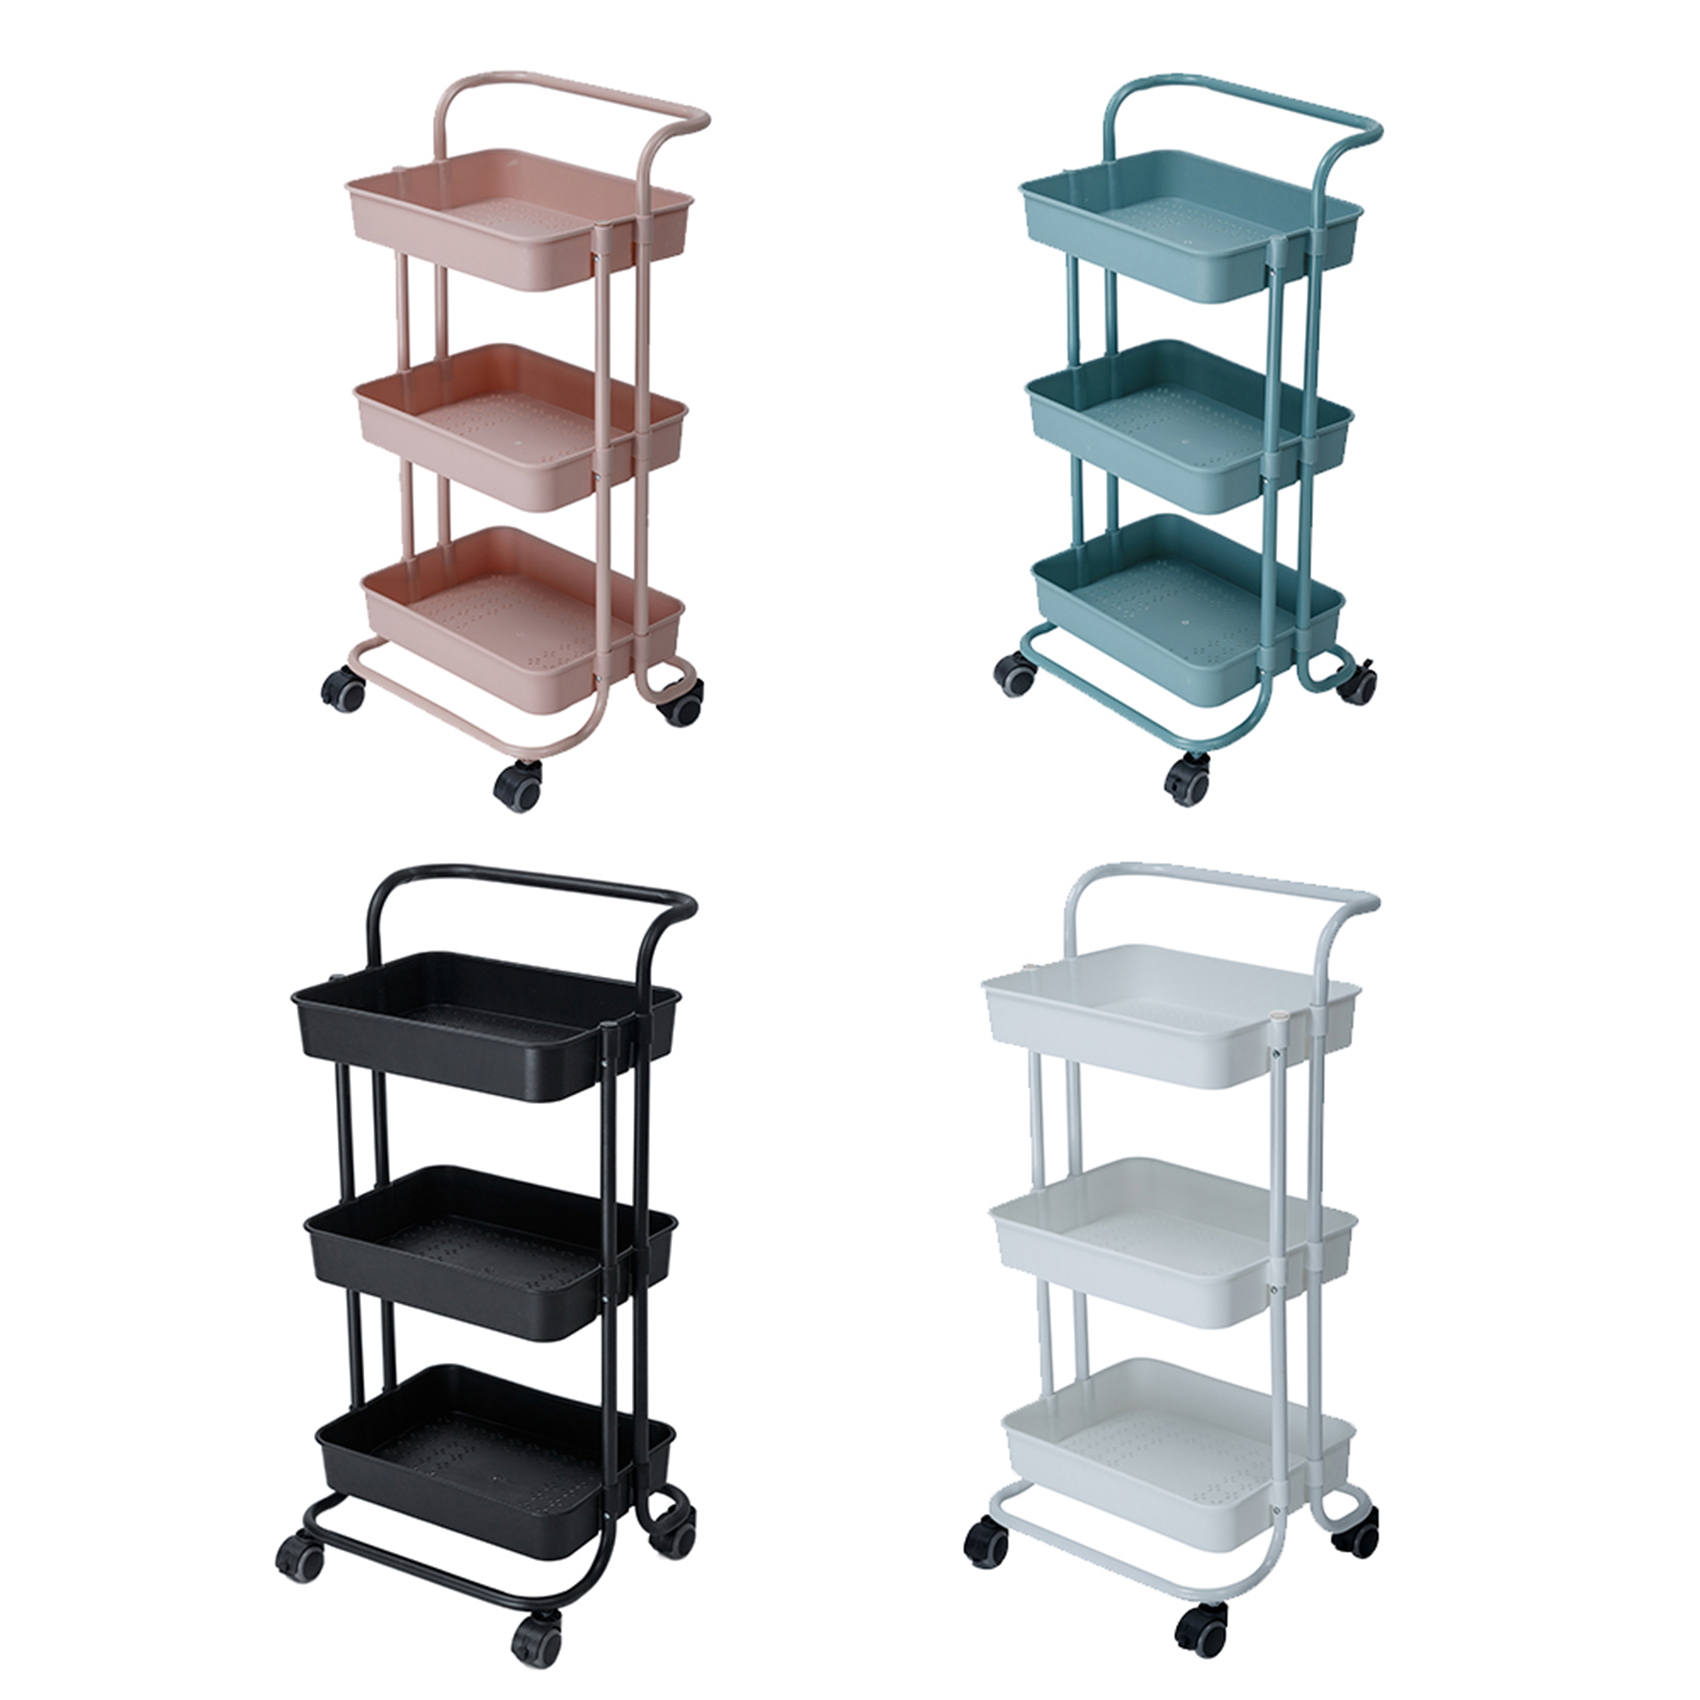 Kitchen 3-Tier Trolley Rolling Storage Cart with Lockable Wheel and Handle Multifunction Heavy Duty for Kitchen Bathroom Office